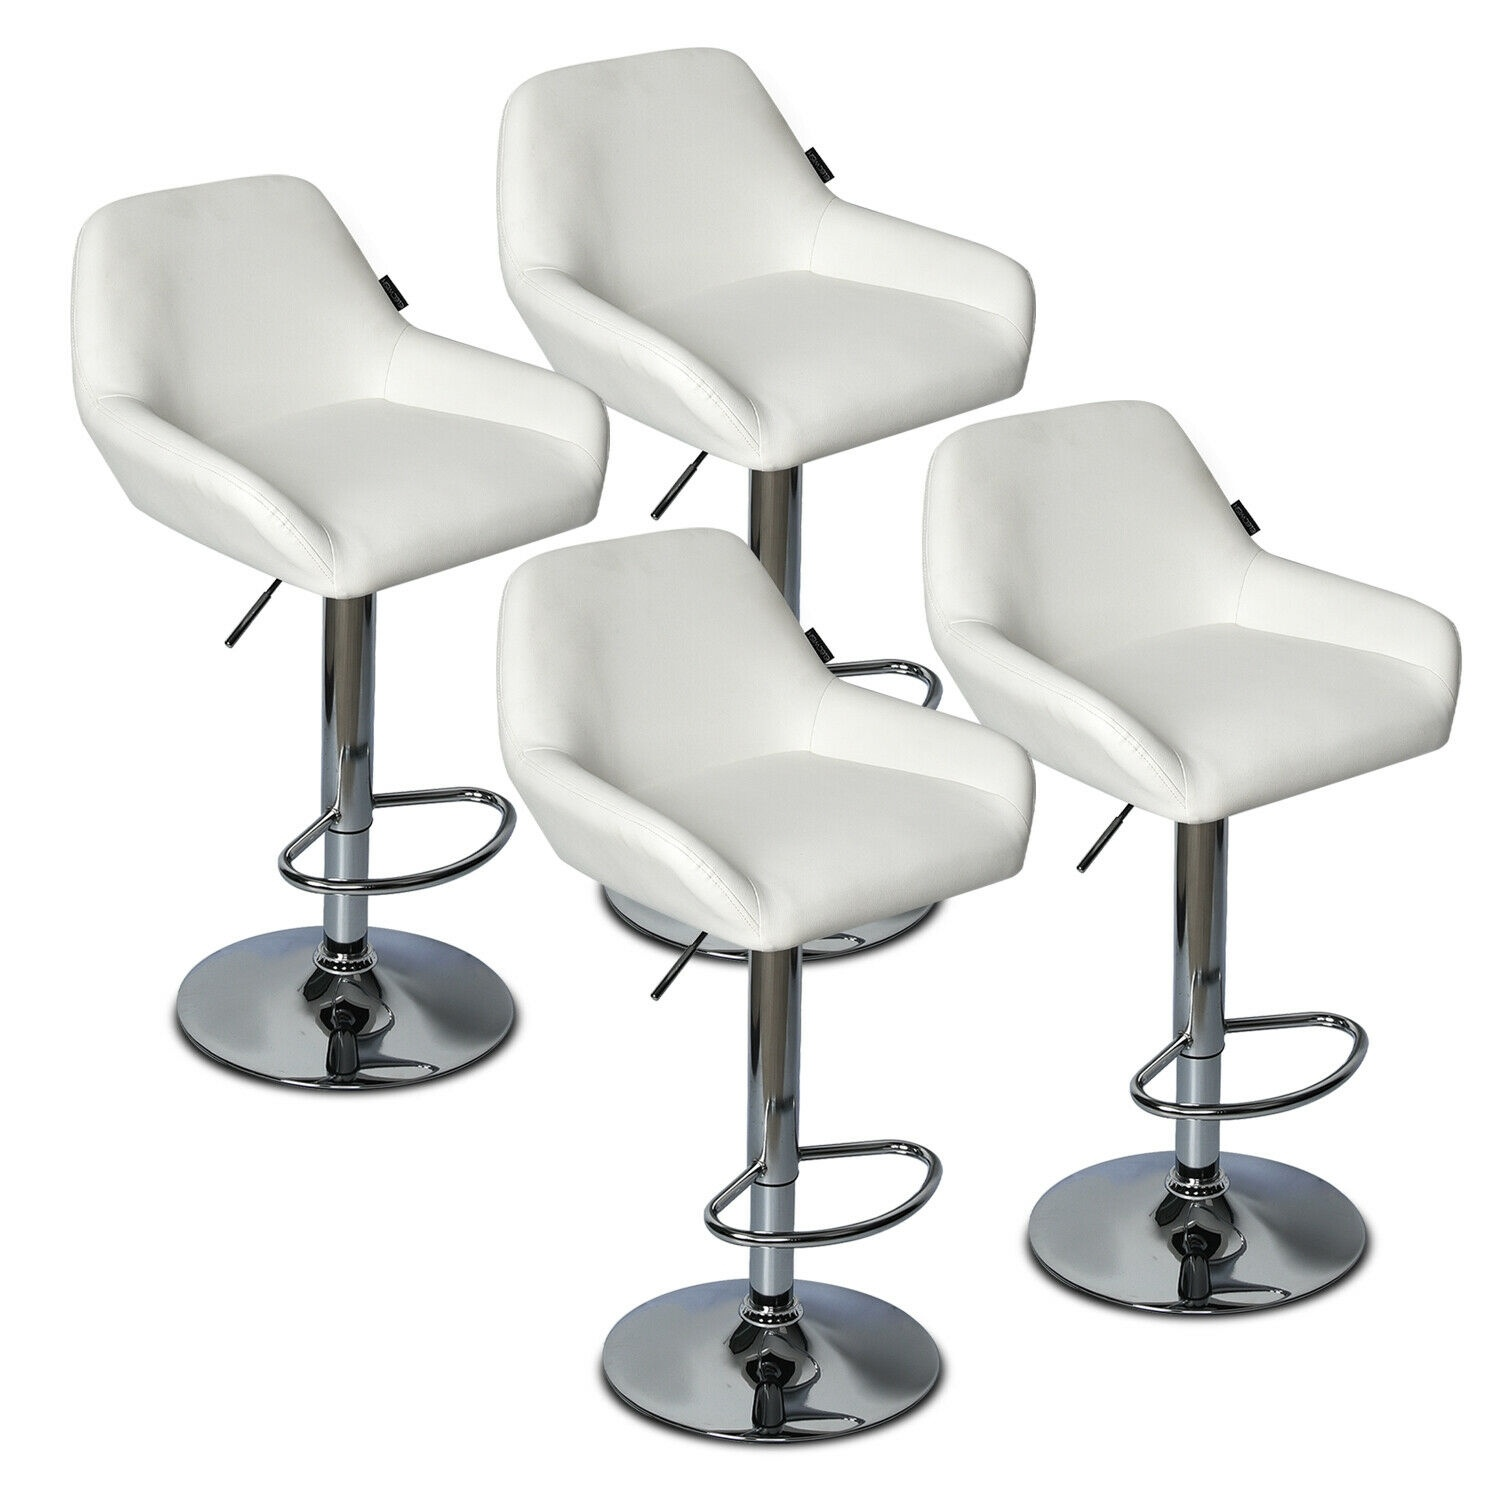 Set Of 4 Bar Stools Adjustable Swivel Leather Counter Pub Kitchen Dining Chairs